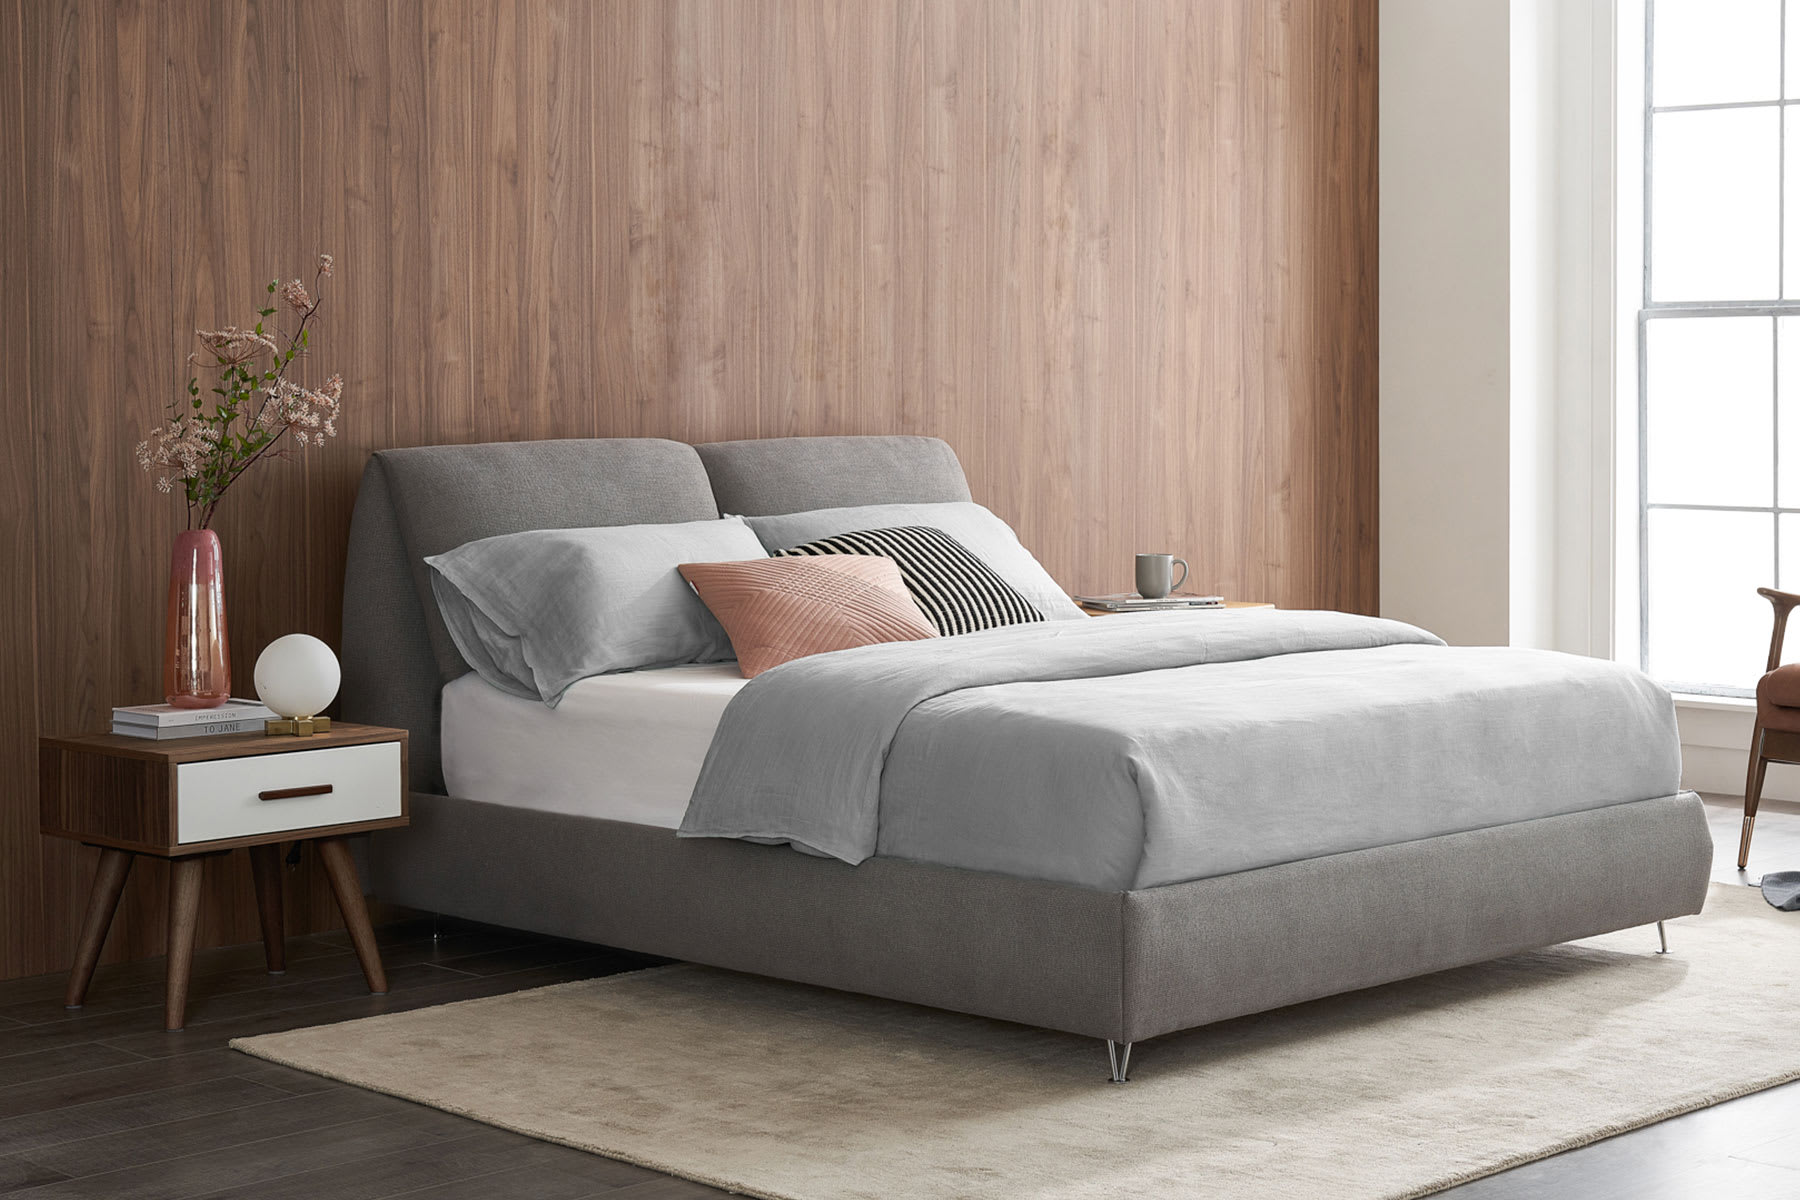 light gray upholstered fabric bed with sofa, bedside table and plant